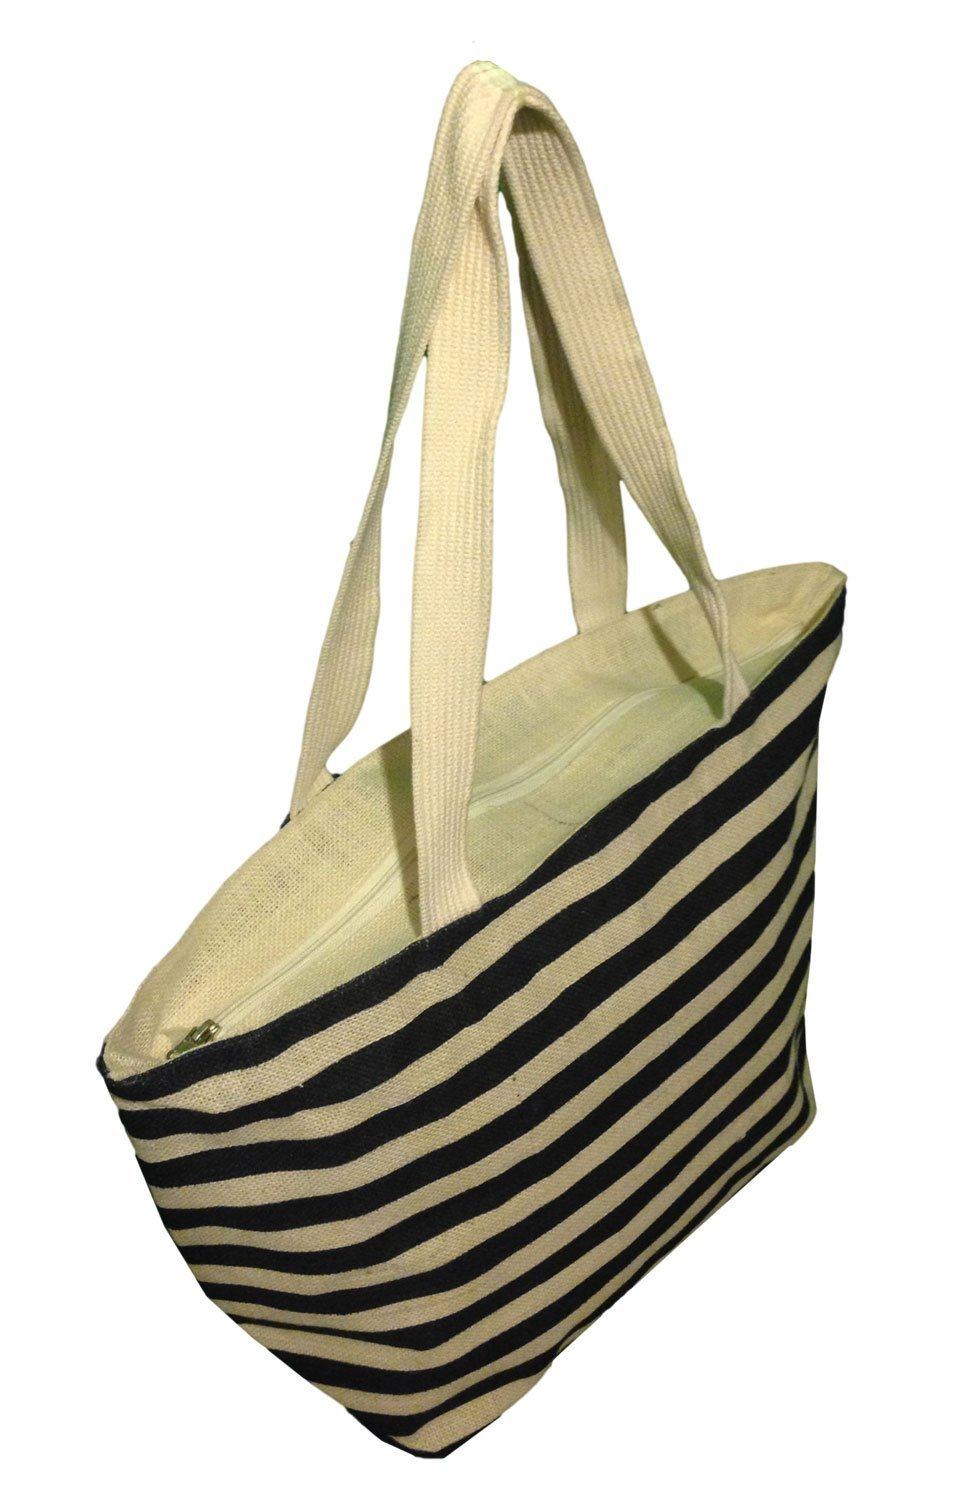 "Burlap Beach Bag with Stripes Ivory/Navy 21""x13.5'x5.5"""